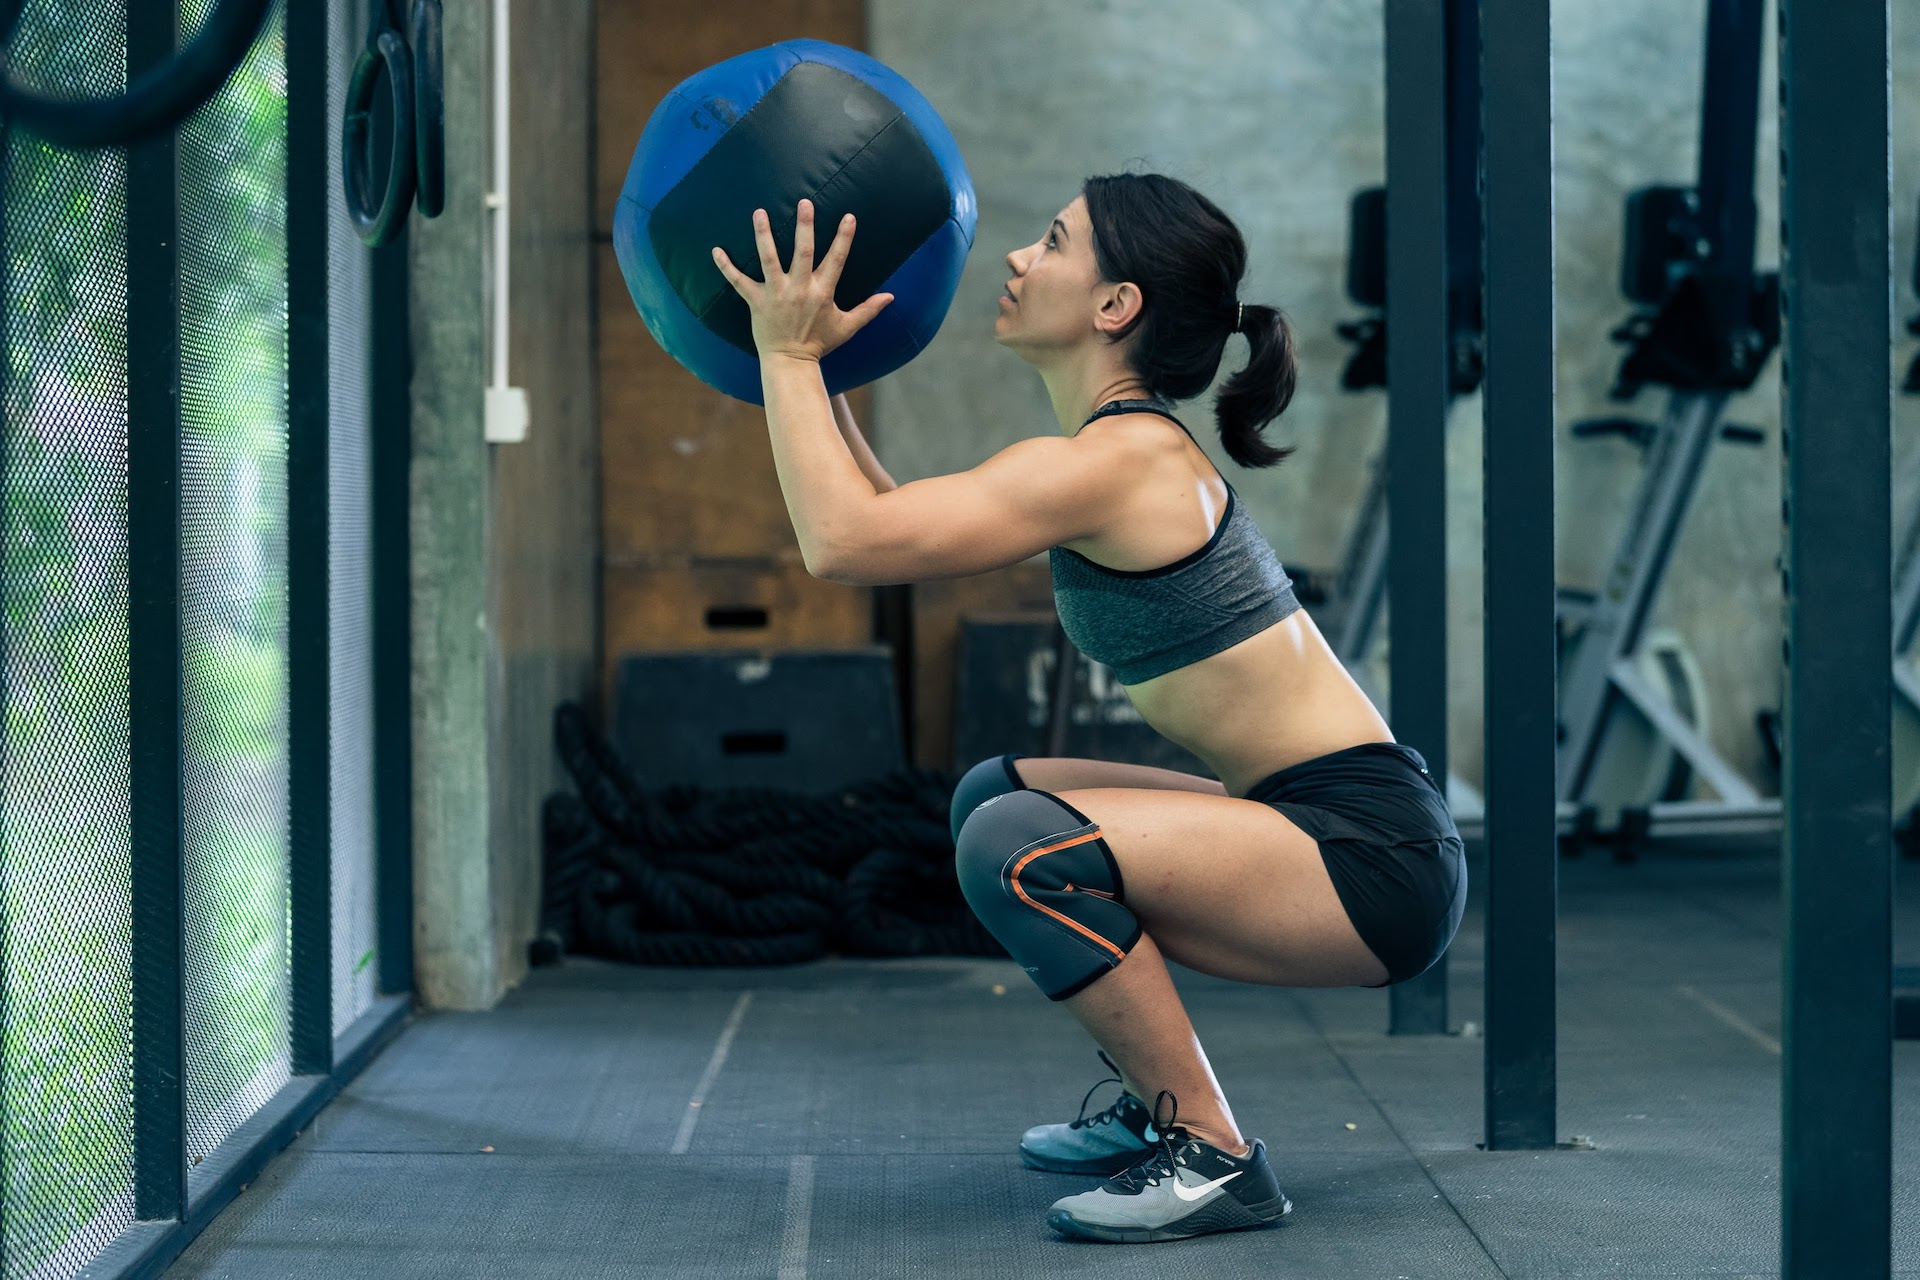 CrossFit 20.5 Open Workout: Muscle ups , Calorie Row and Wall Ball